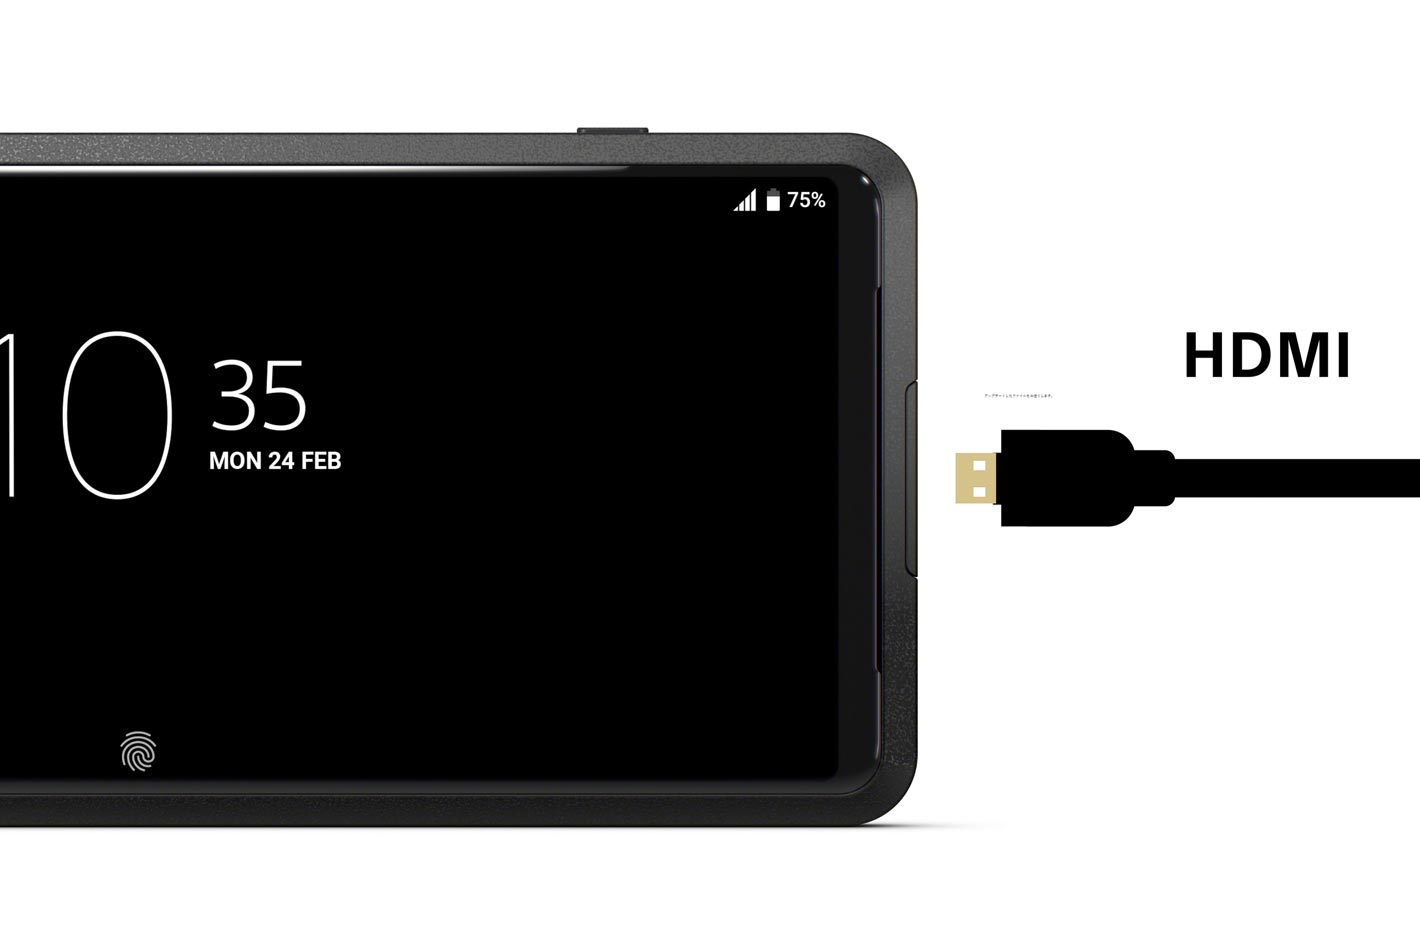 Xperia PRO: world's first smartphone with dedicated HDMI input